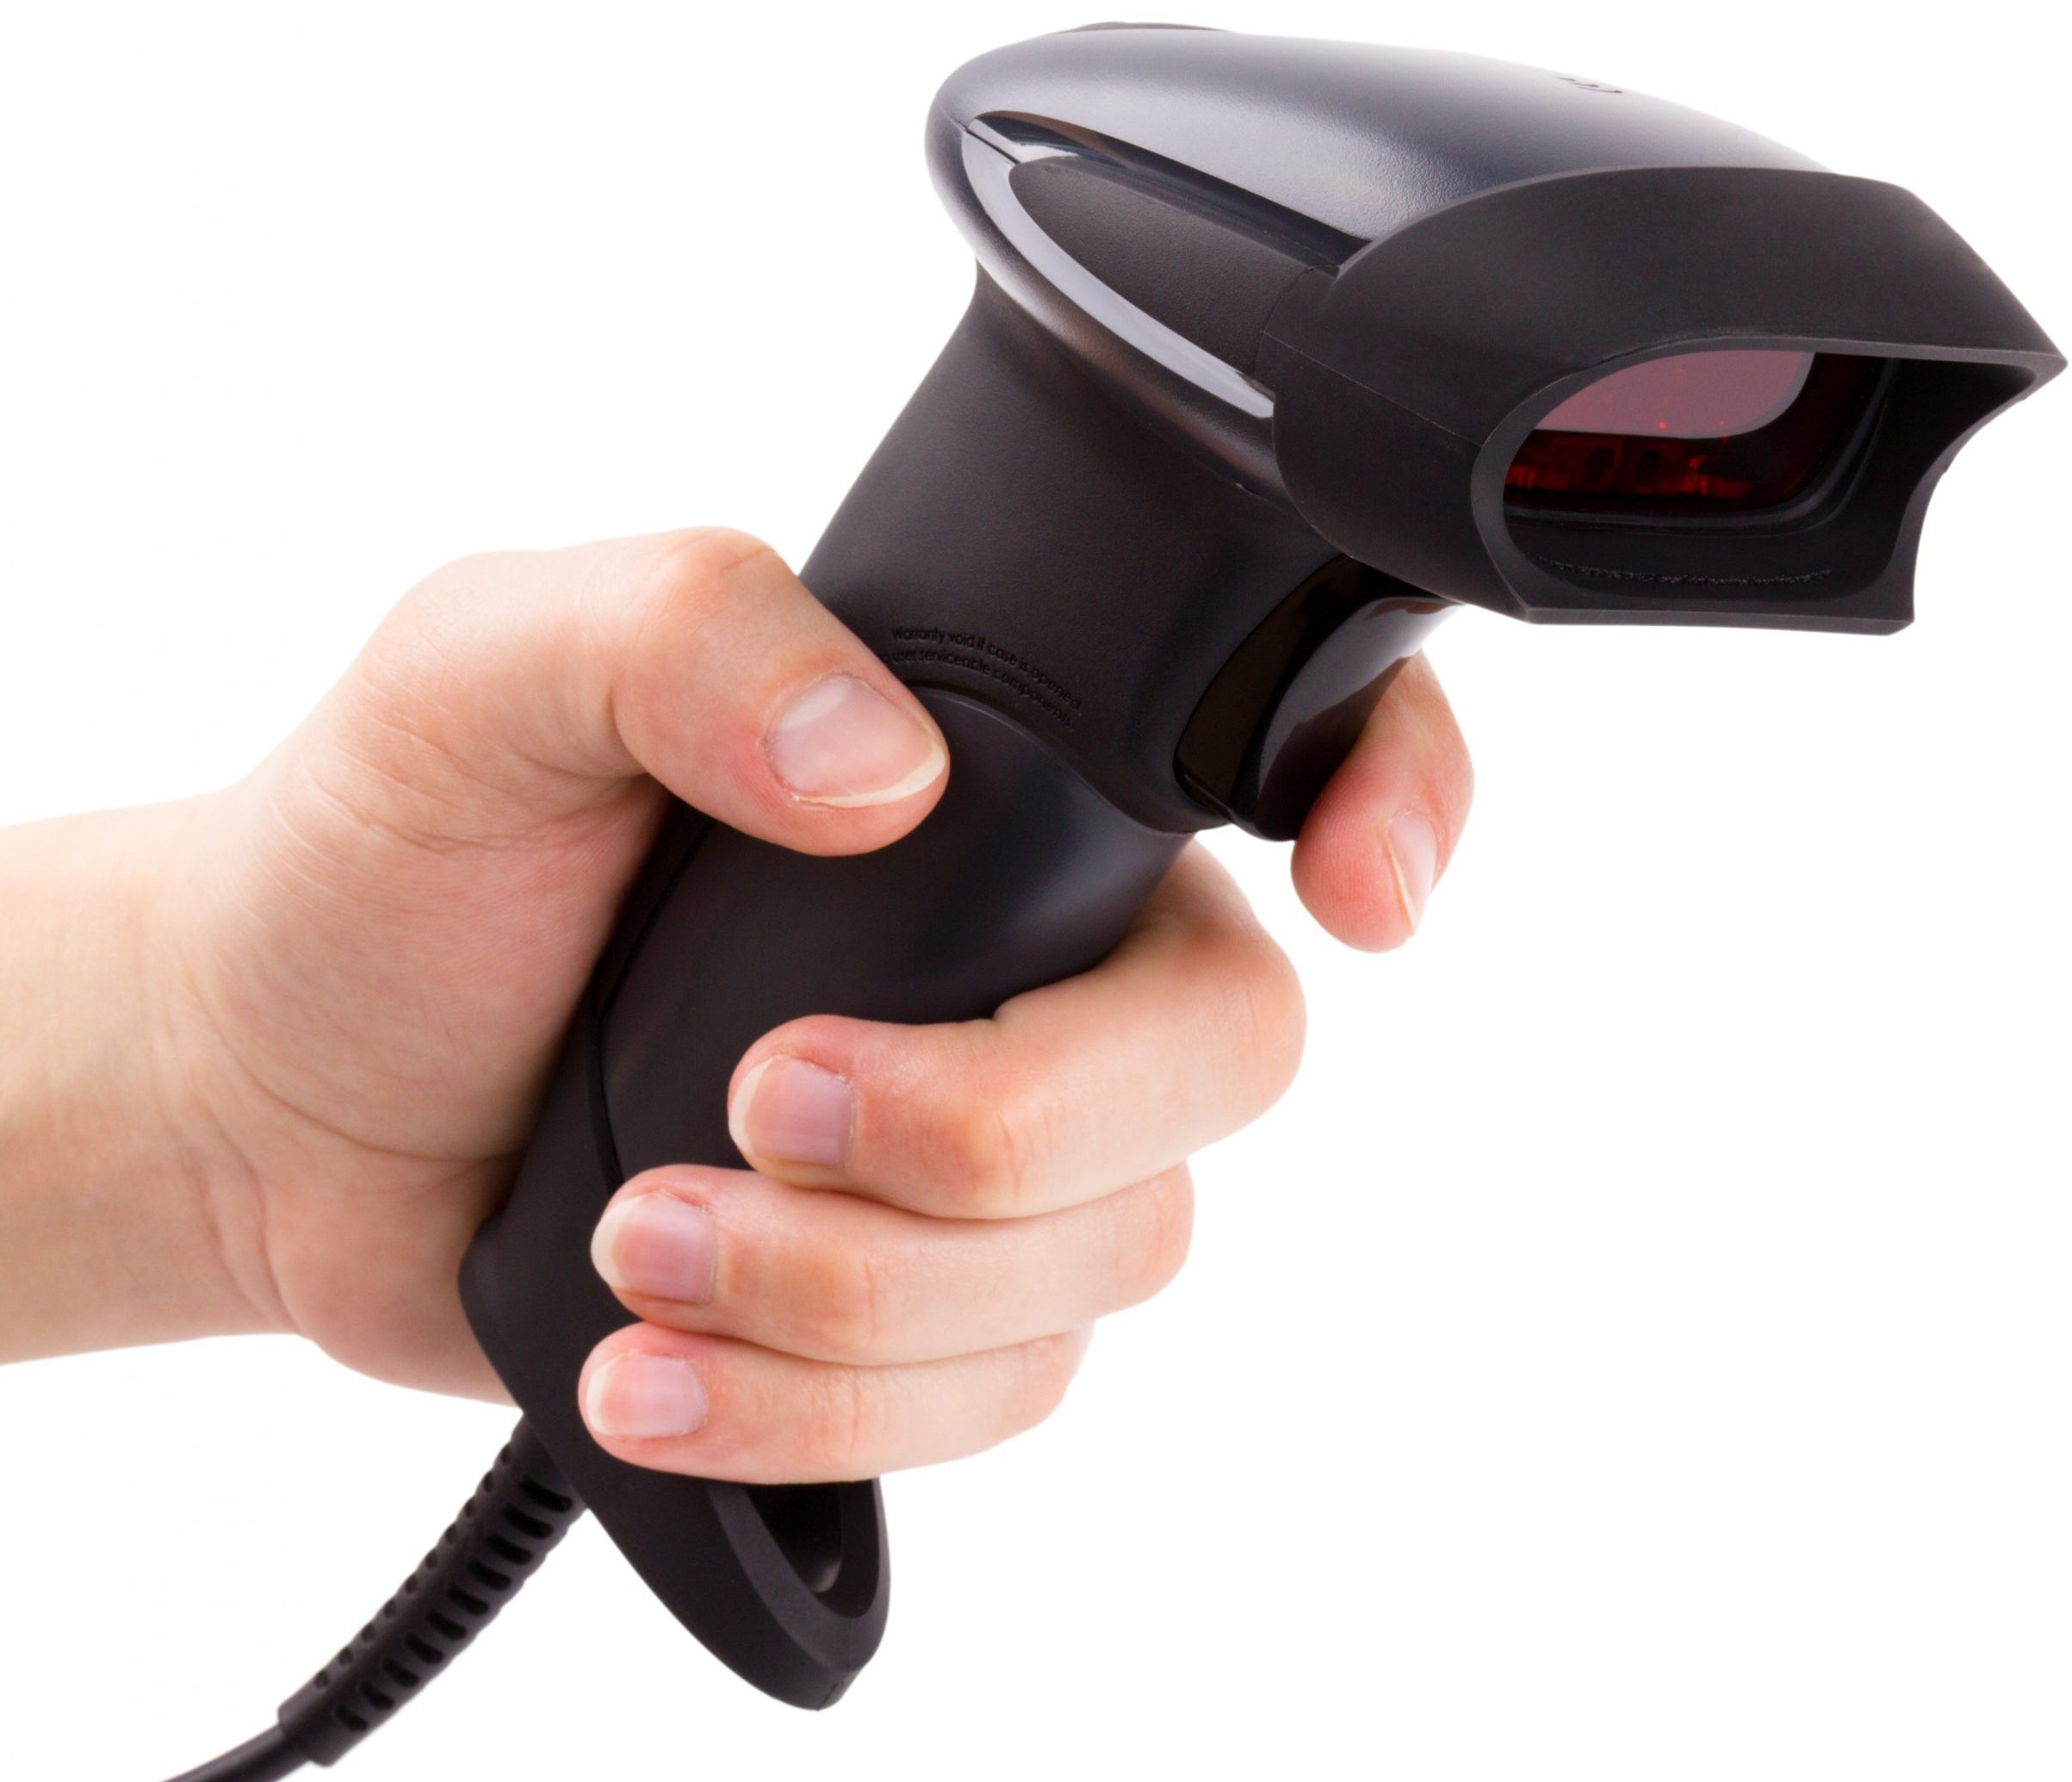 Hand holding a Barcode Scanner